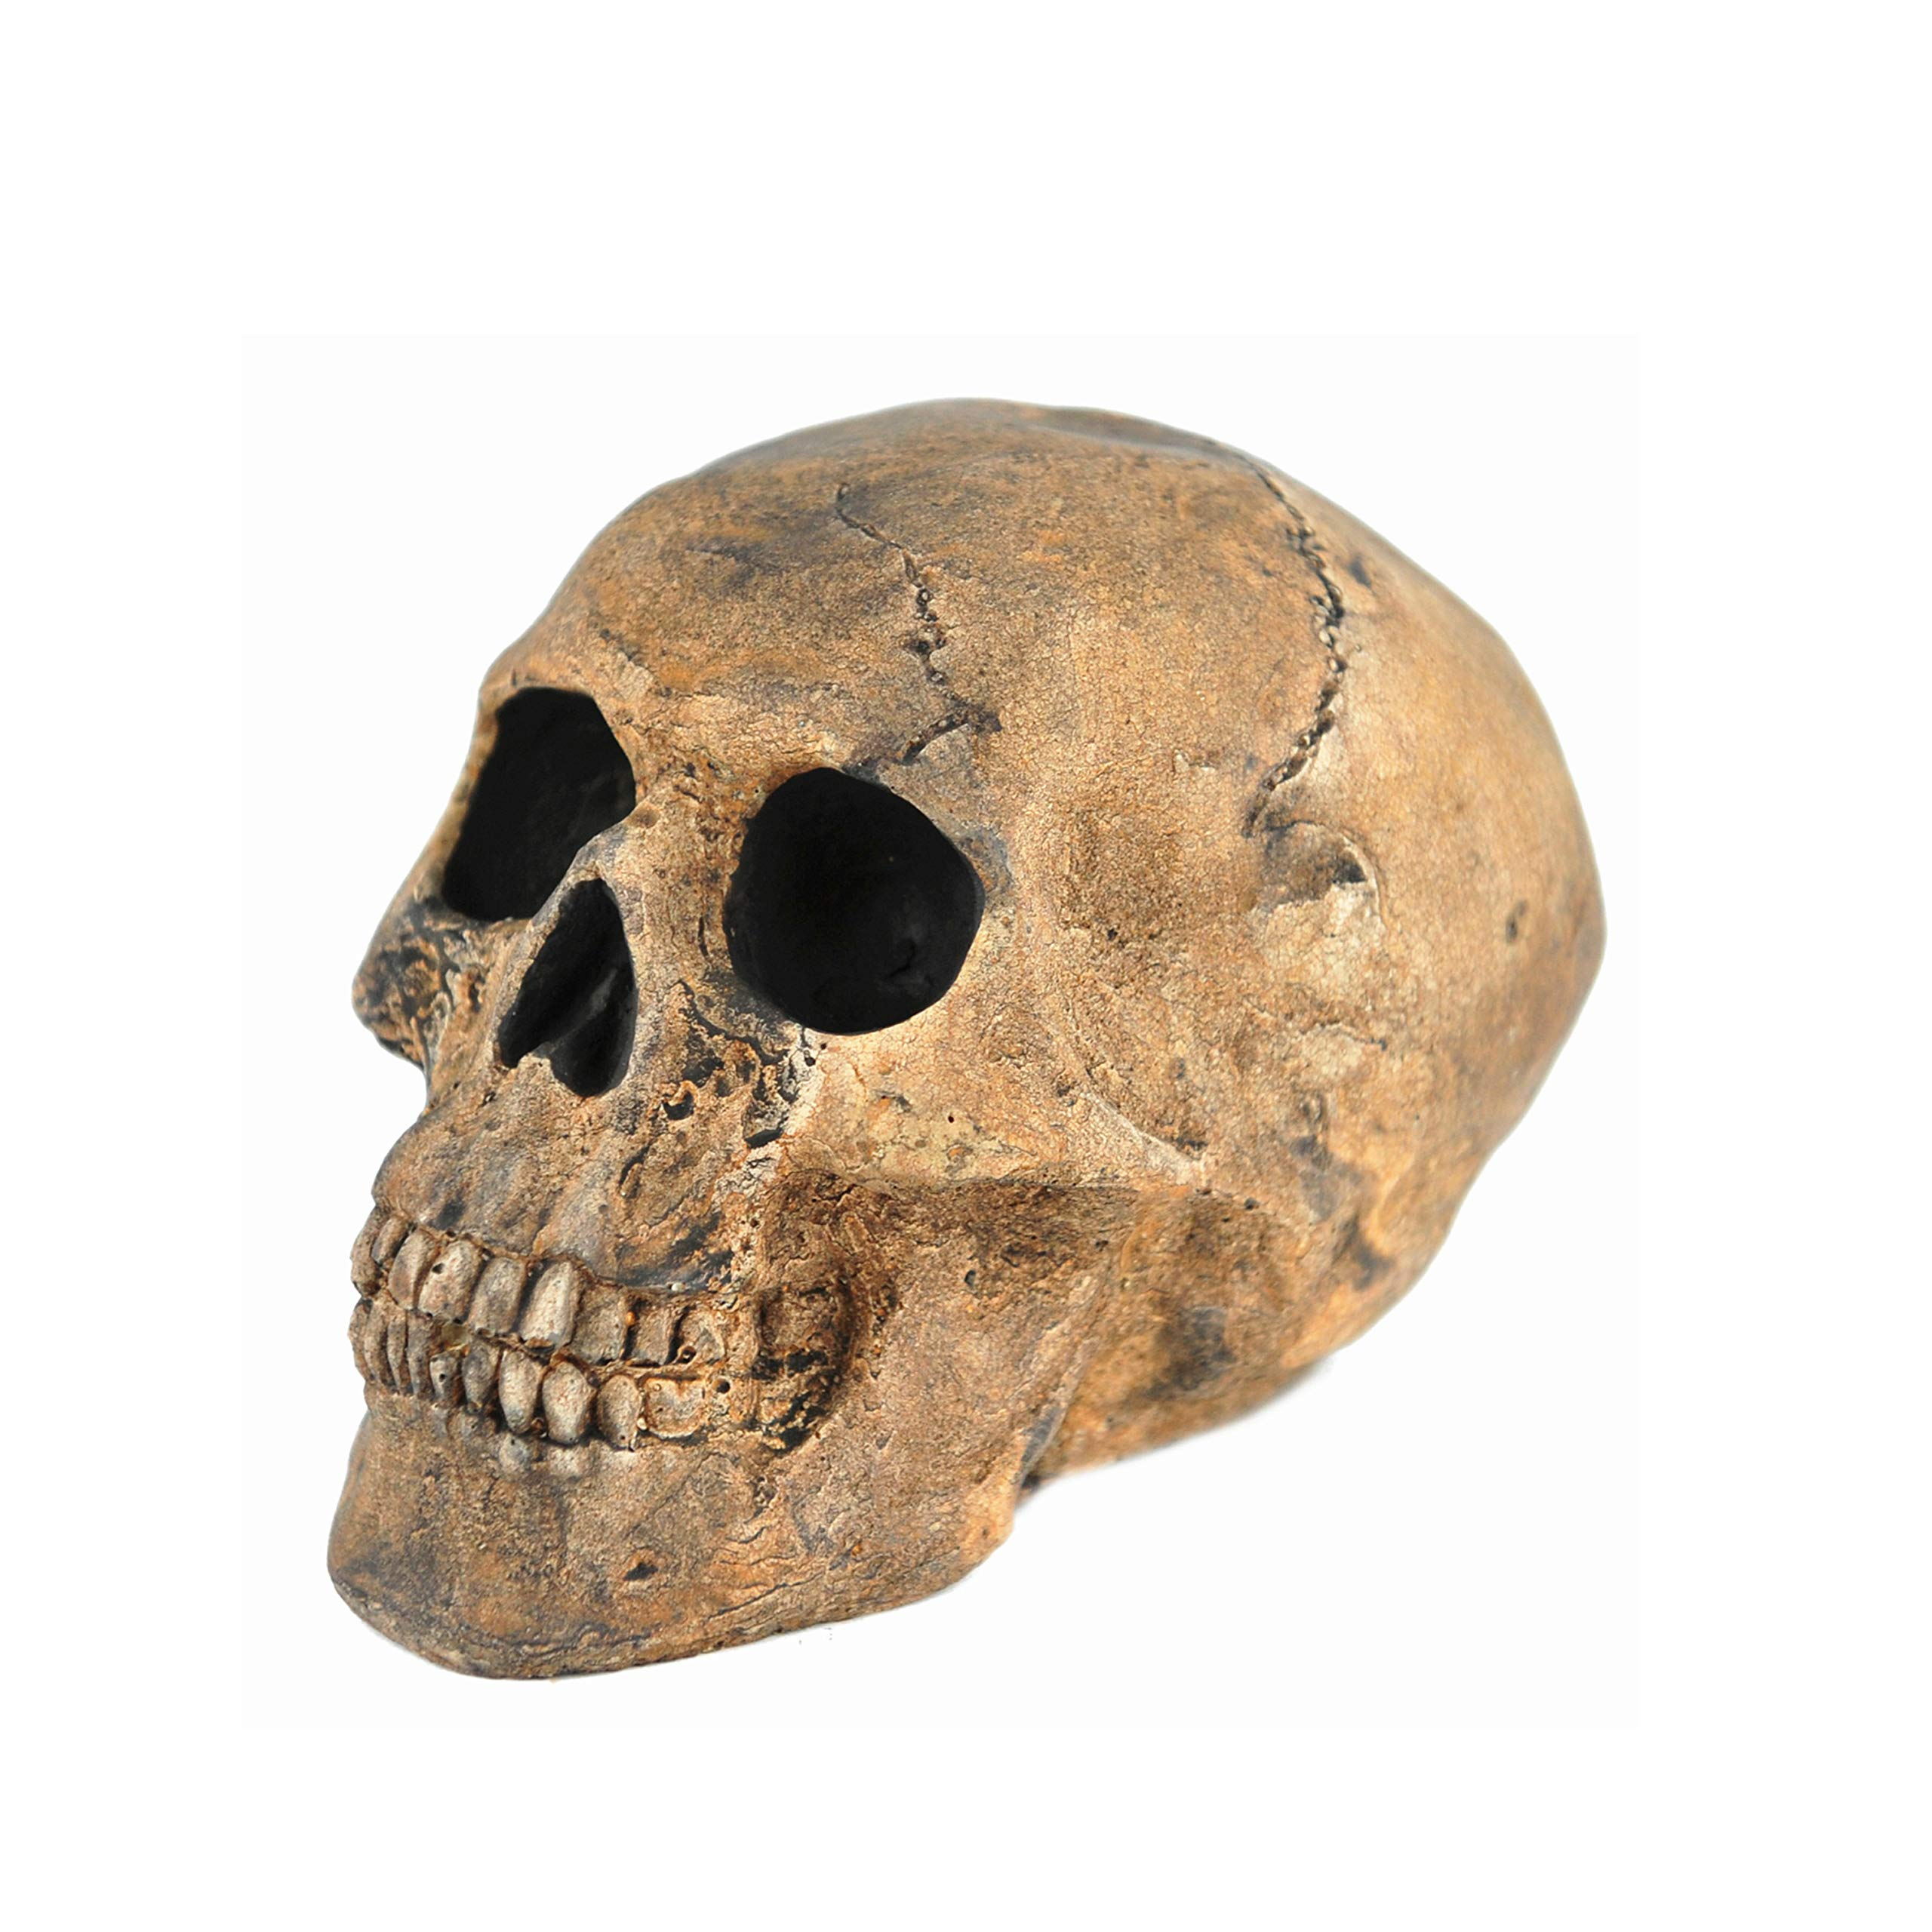 Myard Fireproof Imitated Human Fire Pit Skull Gas Log for NG, LP Wood Fireplace, Firepit, Campfire, Halloween Decor, BBQ (Qty 1, Brown - Mini, One Piece)